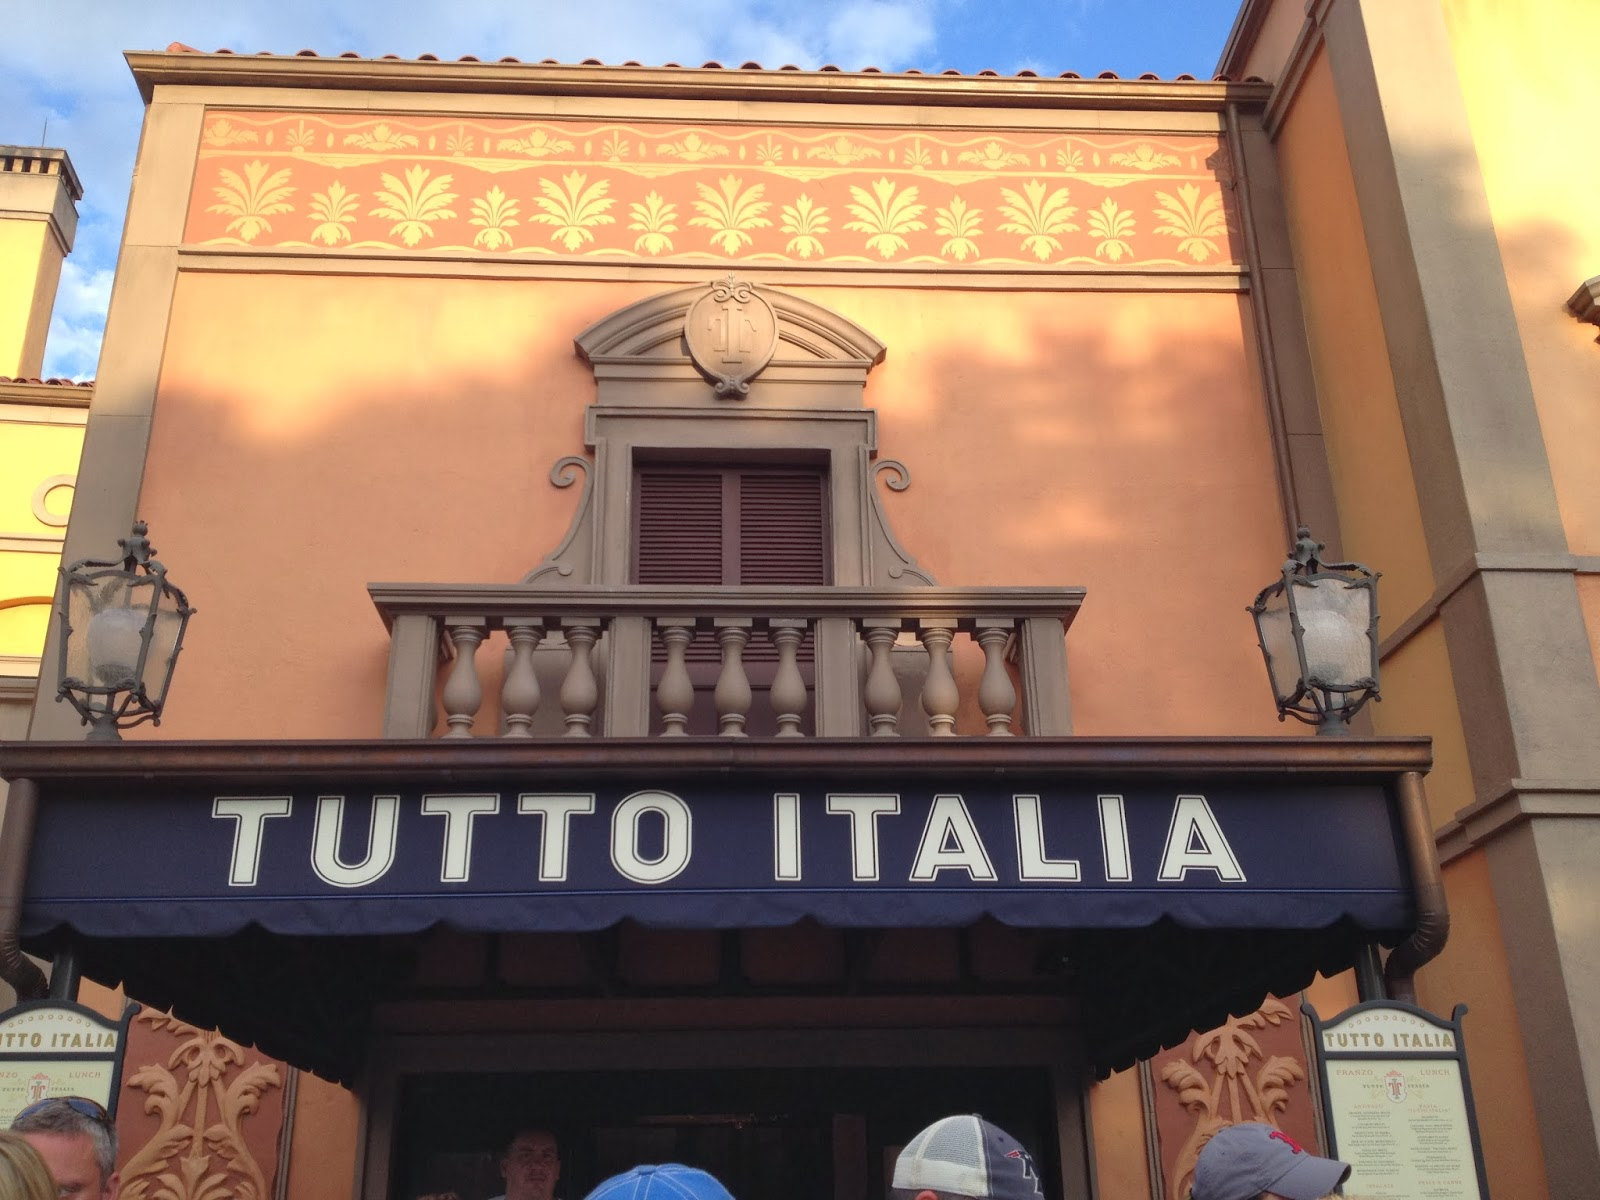 Tutto italia dinner gluten free dairy free at wdw for Tutete italia